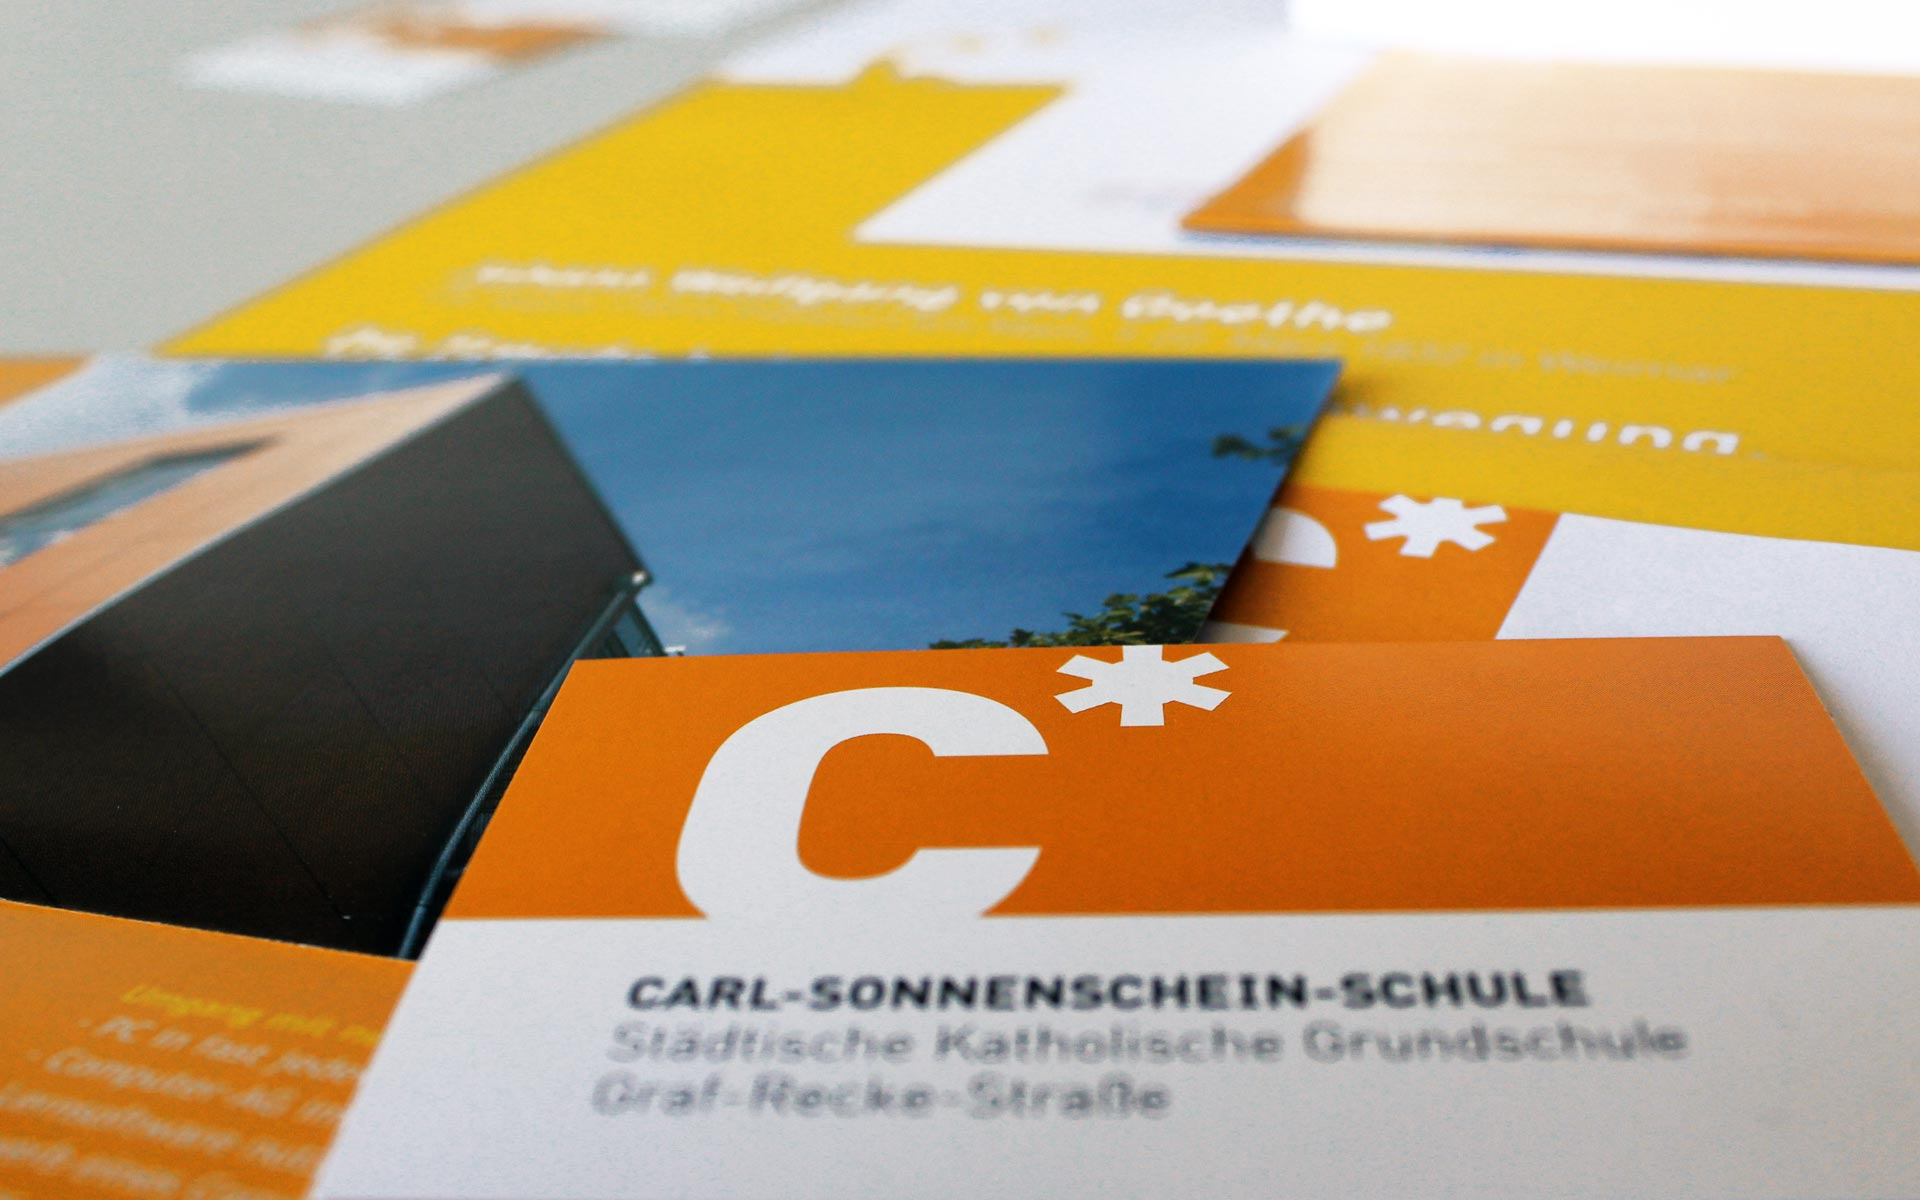 Carl Sonnenschein Schule Corporate Design, Kommunikationsmittel